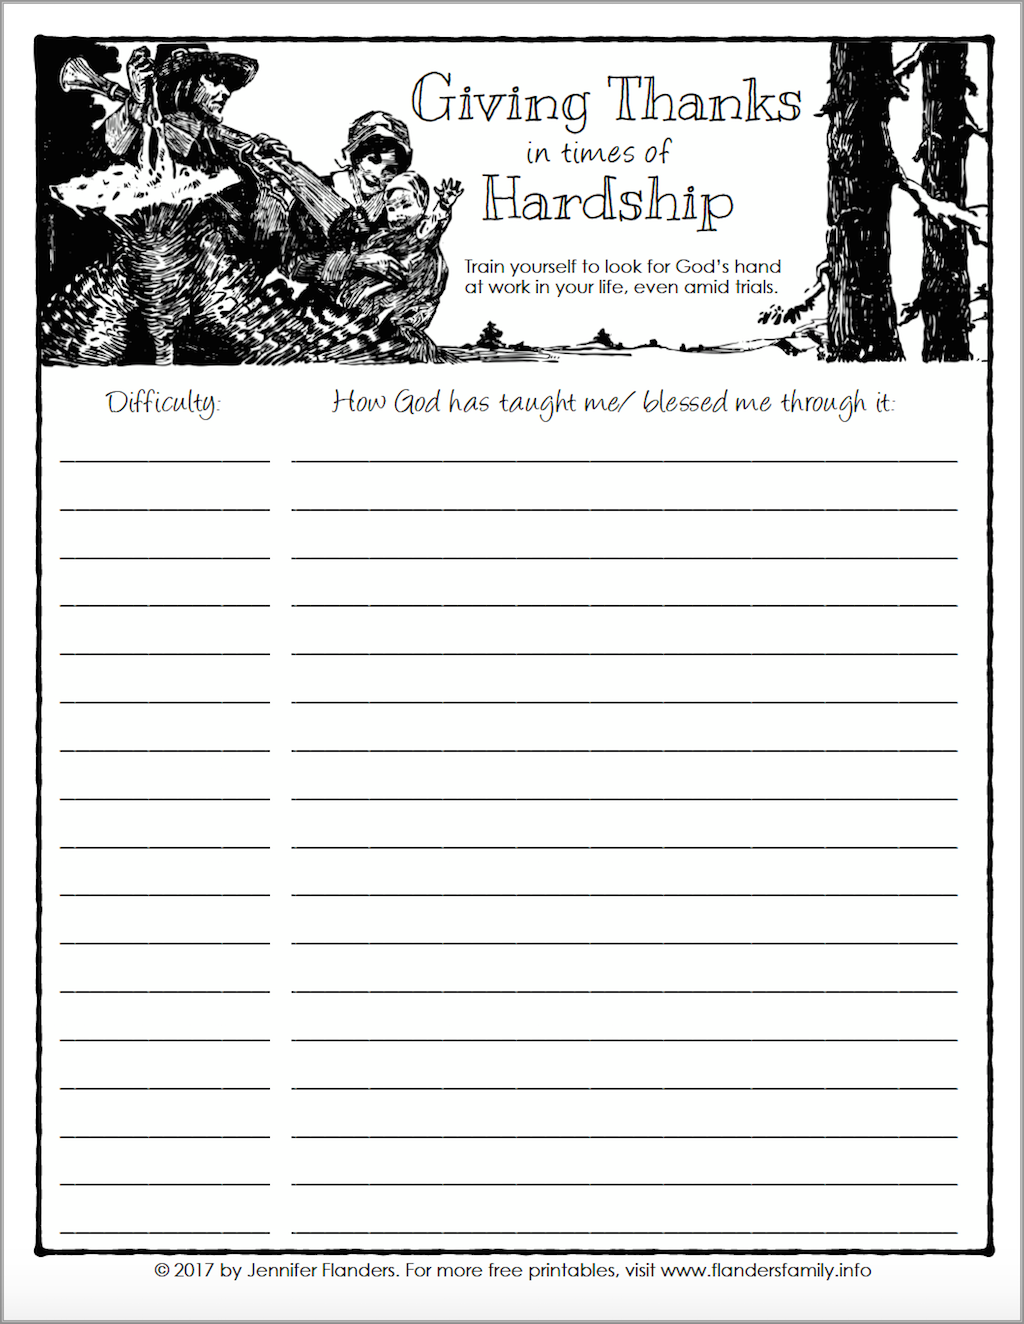 Learning to give thanks in the midst of trials and hardships (free printable)